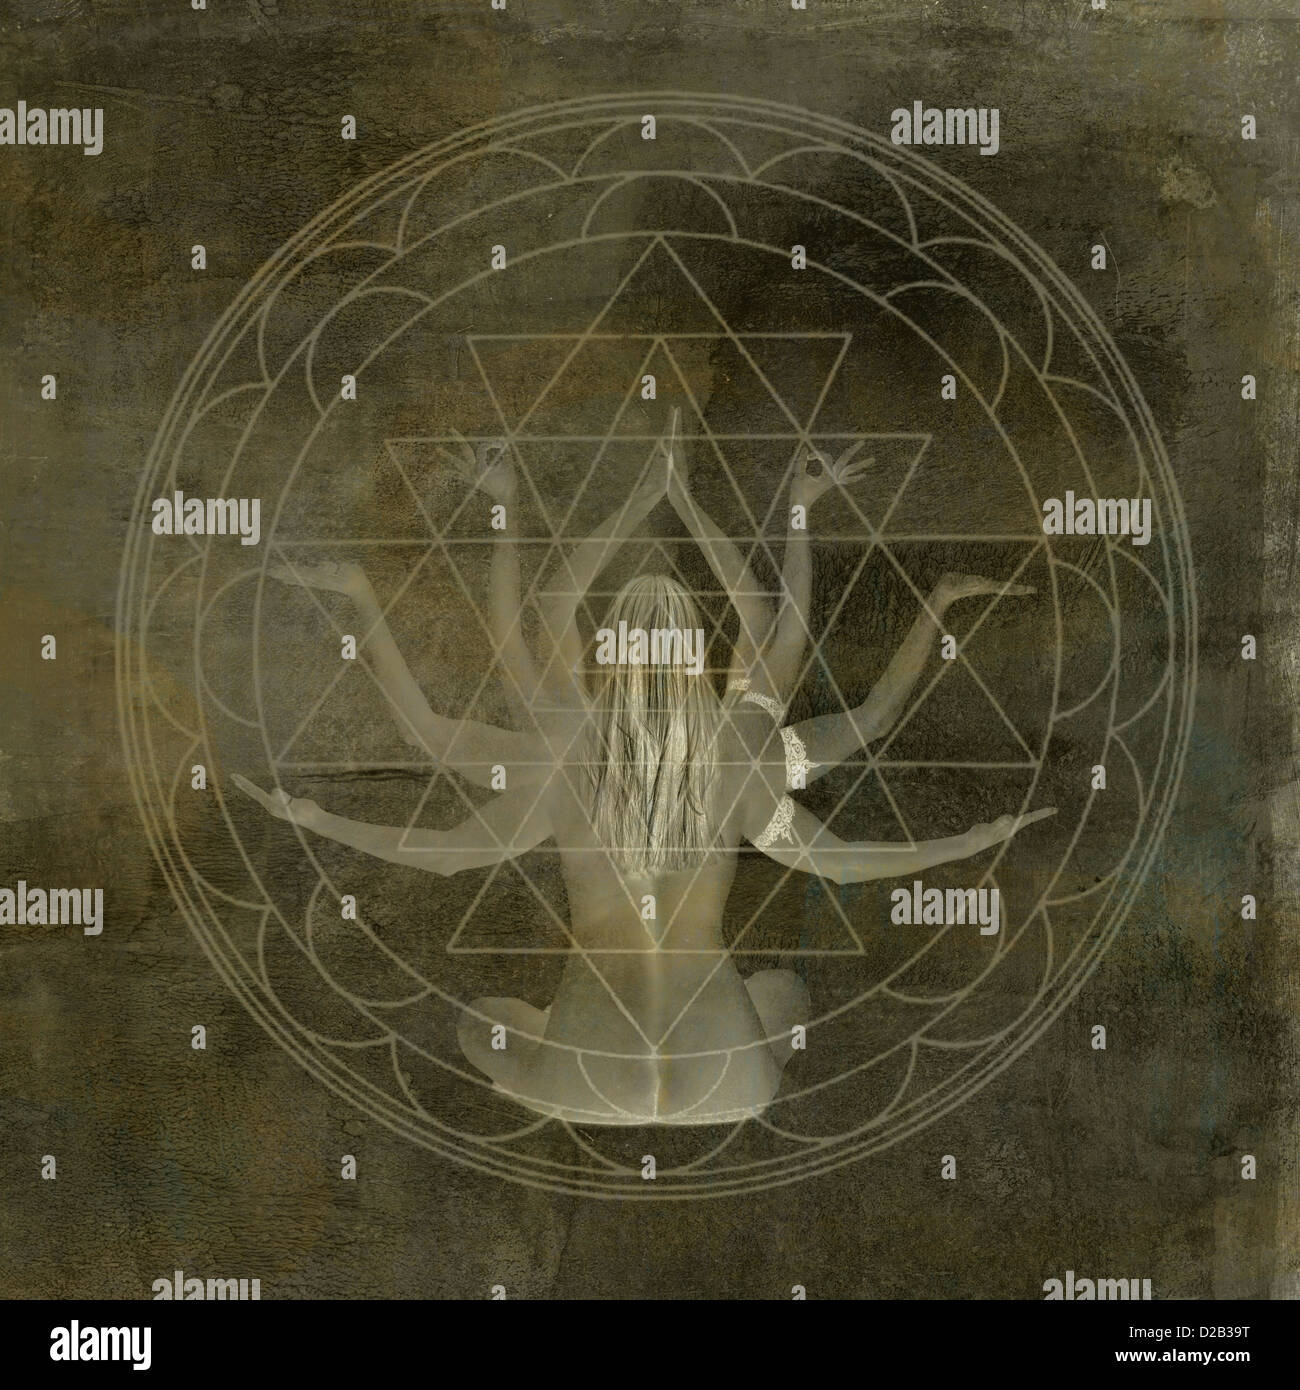 Woman with eight arms in the center of a geometric mandala. - Stock Image